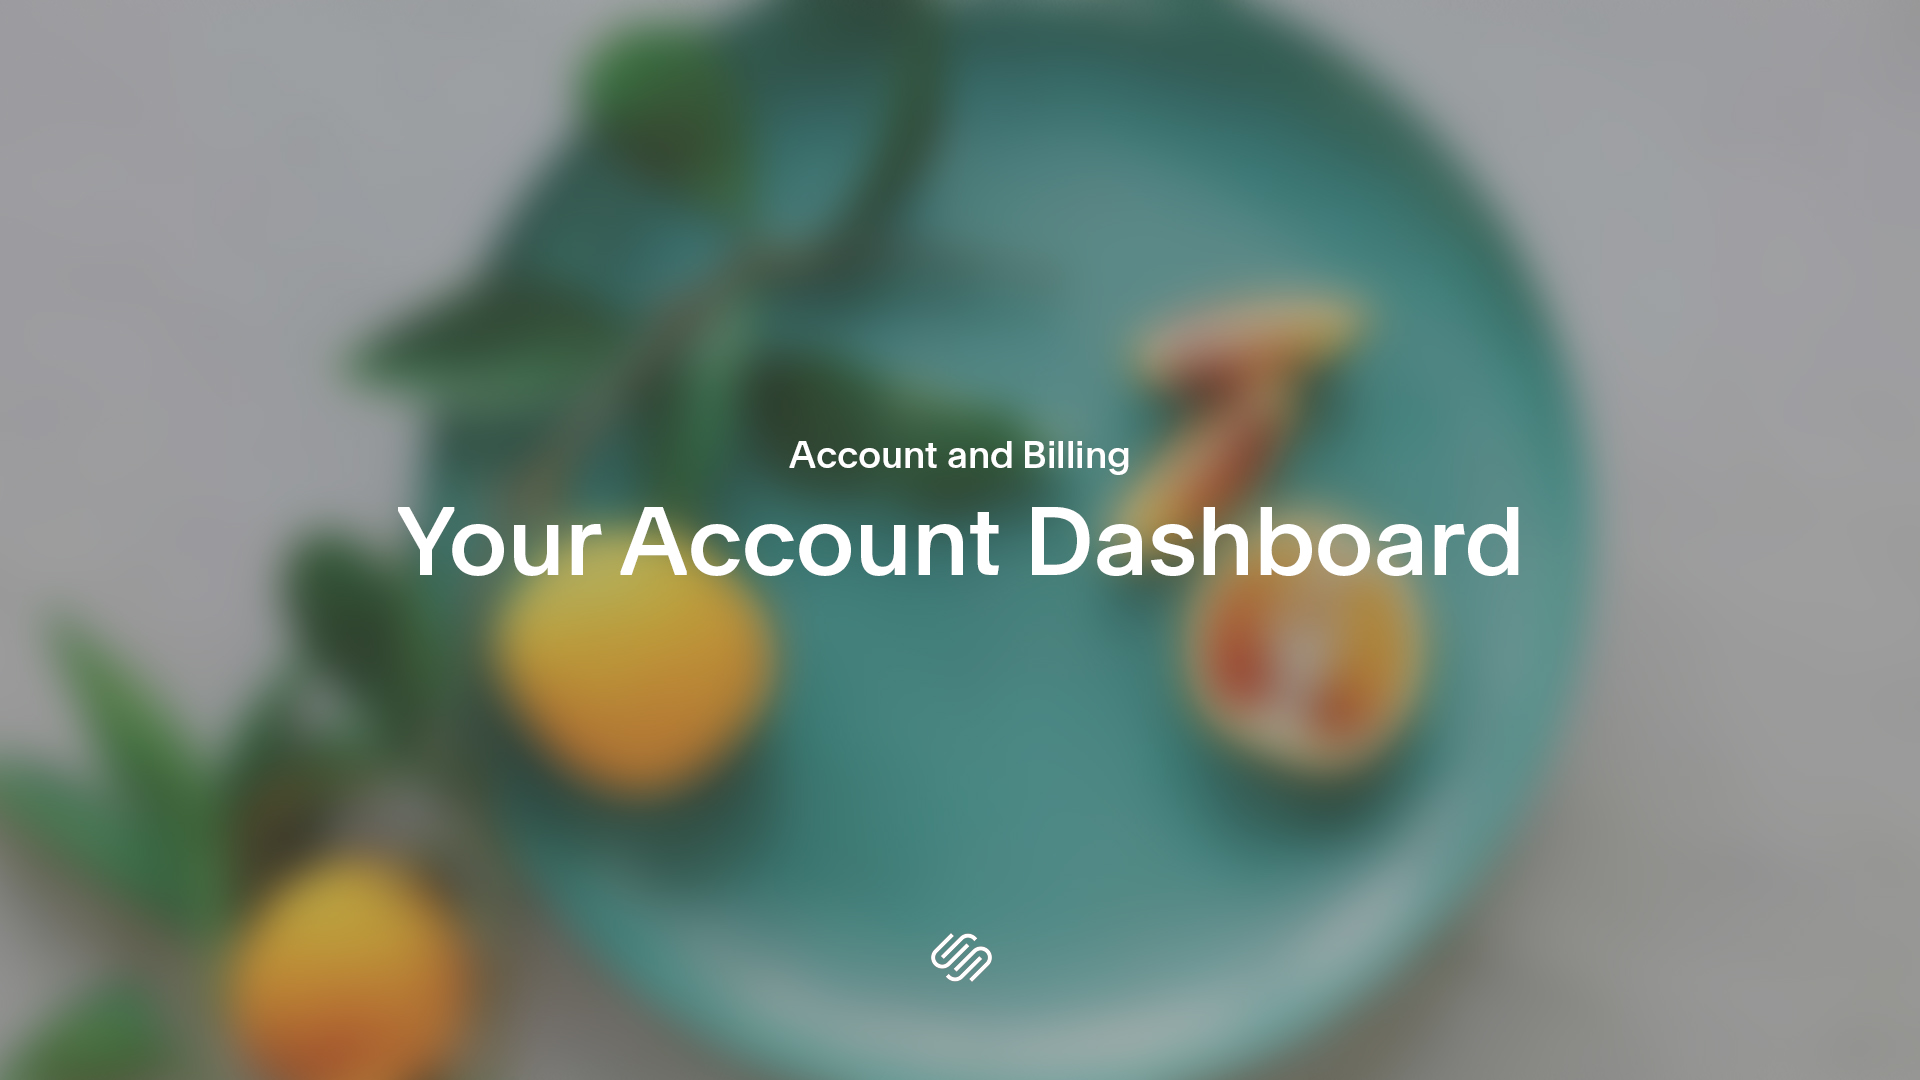 Video: You can manage your sites from the Squarespace account dashboard